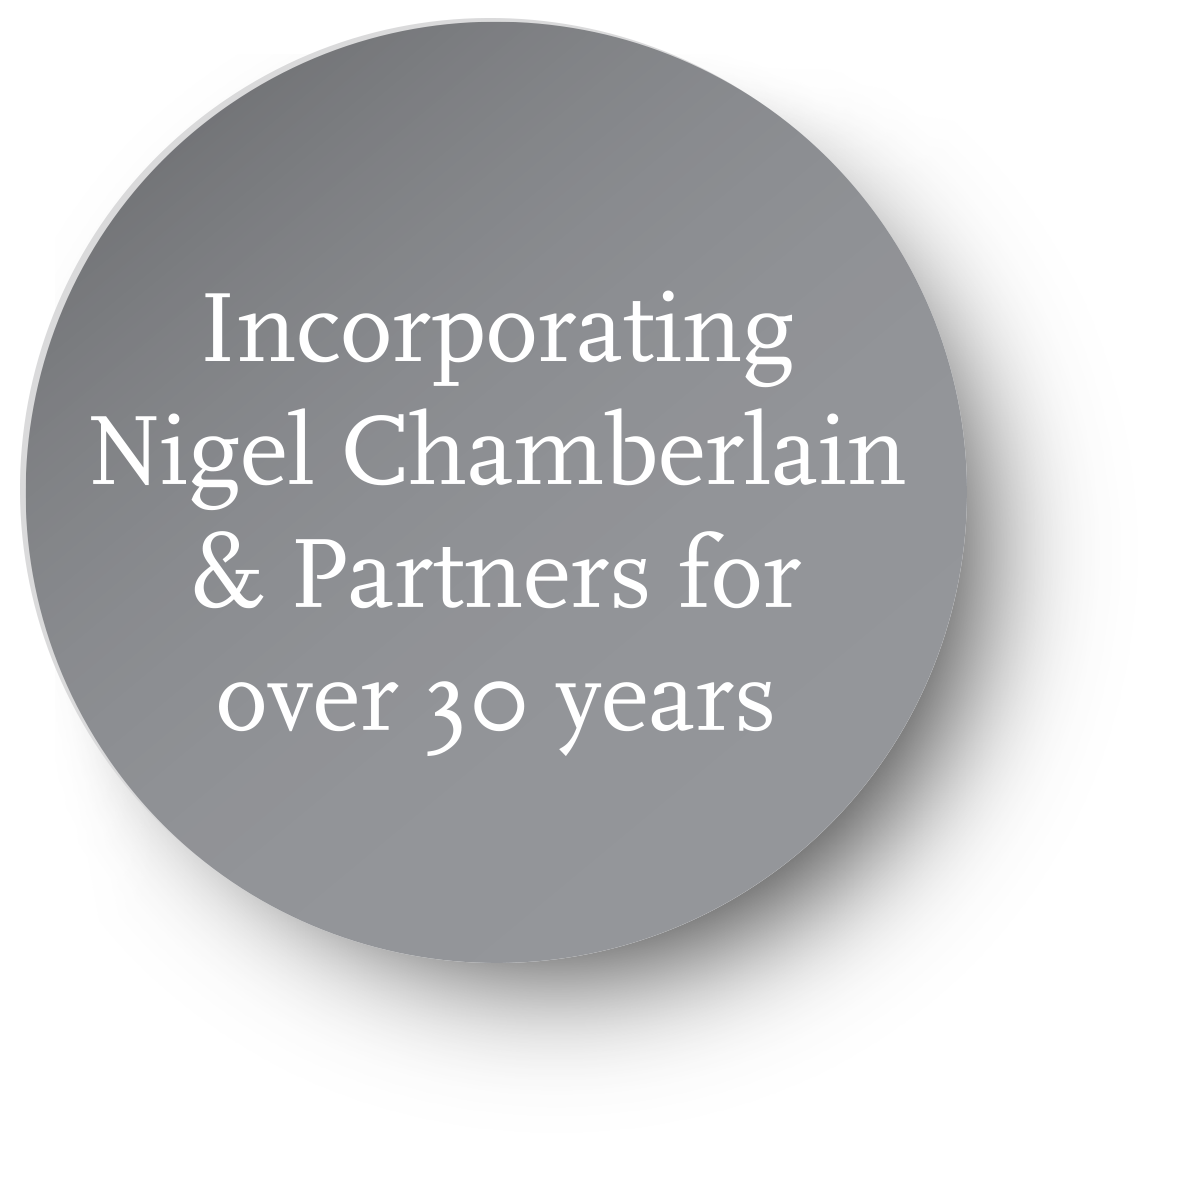 Incorporating Nigel Chamberlain & Partners for over 30 years